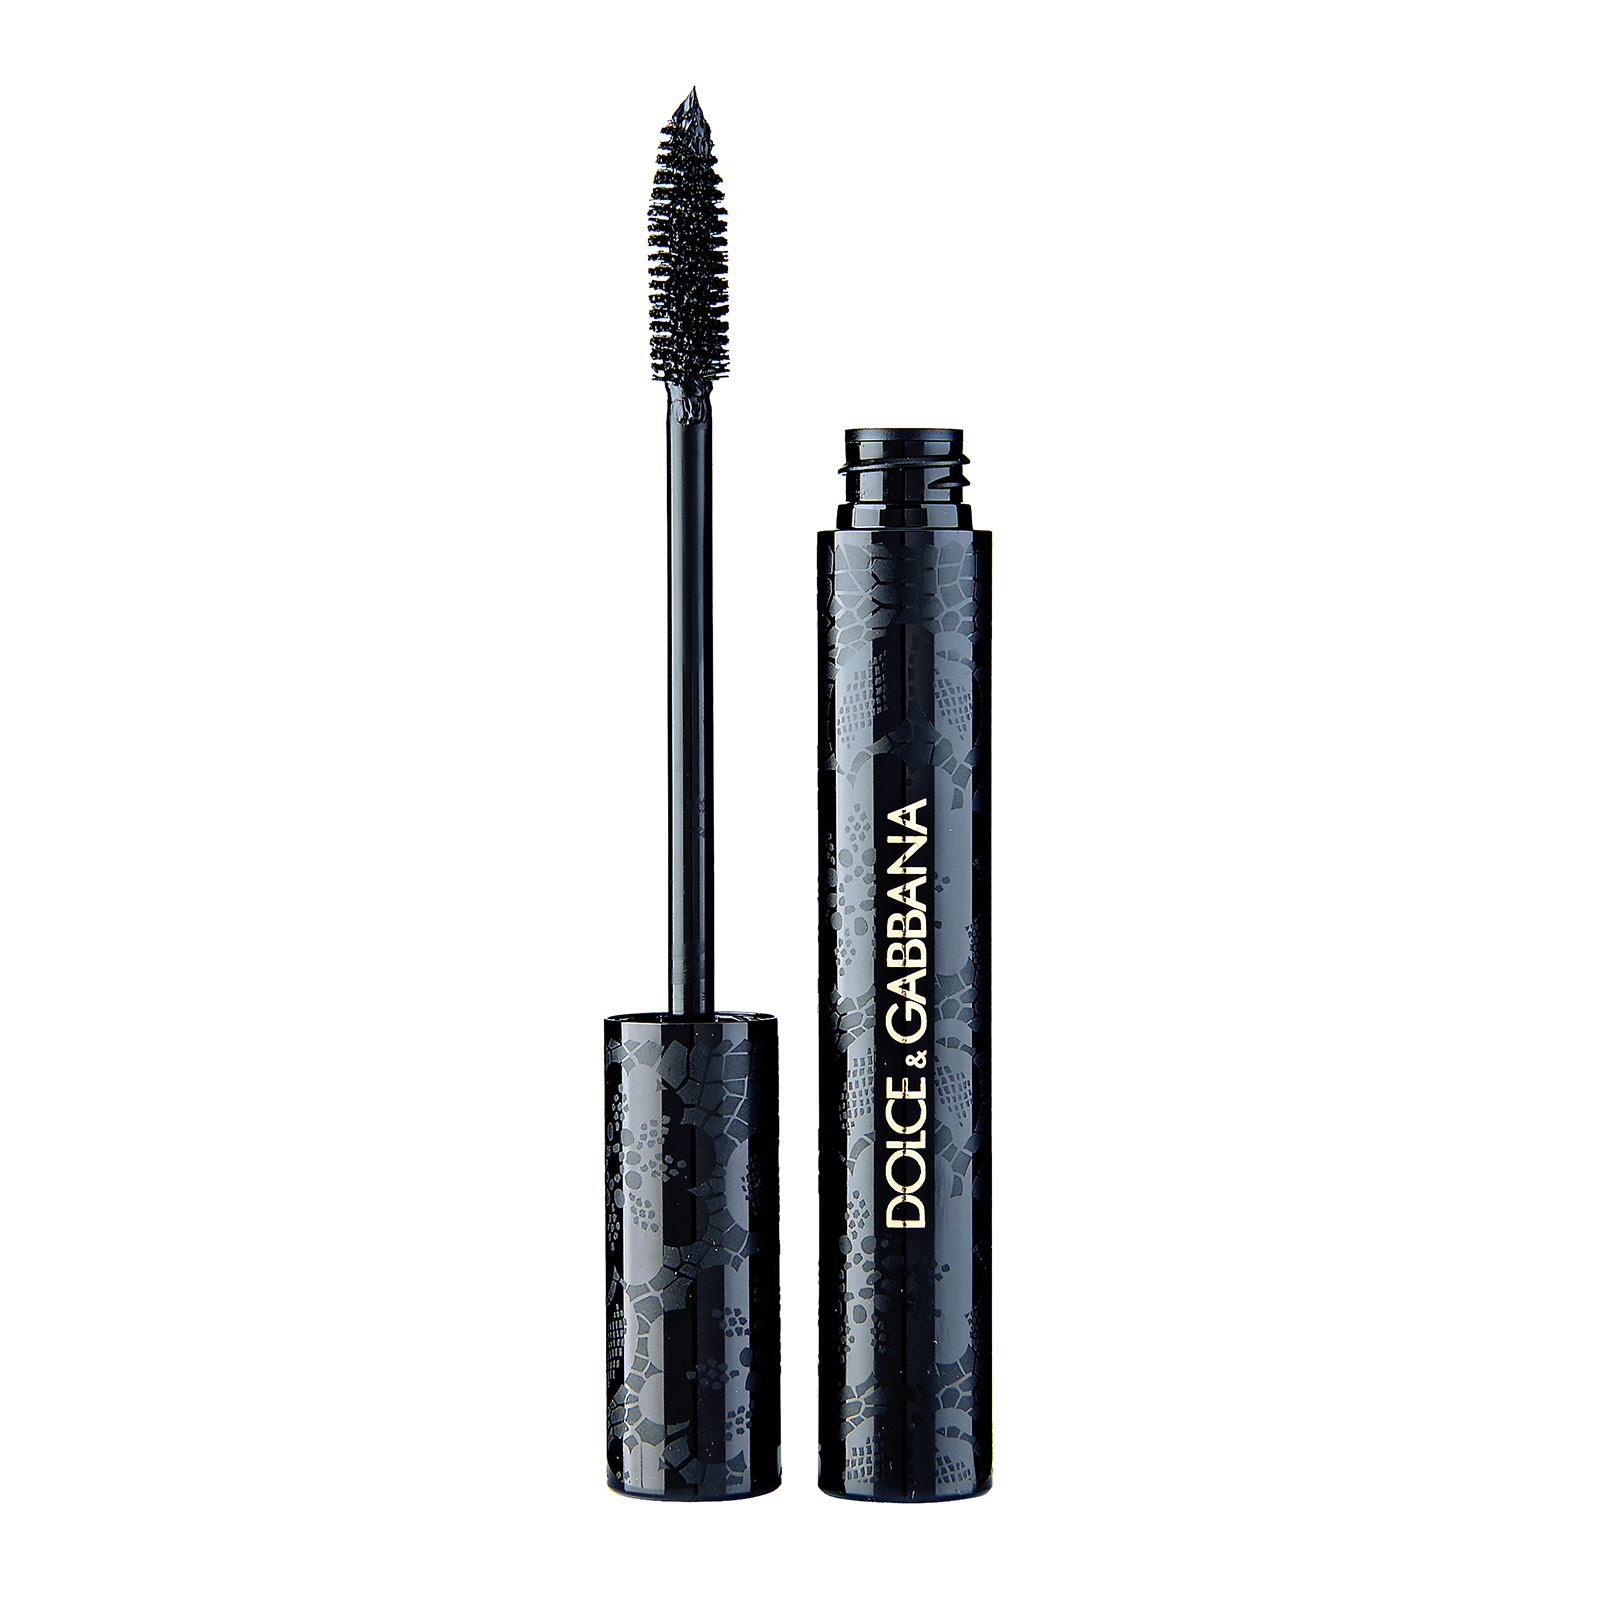 2017 05 dolce gabbana intense perfume review - Dolce Gabbana Intenseyes Black Intensity Mascara Black Intense 1 0 23oz 7ml Women